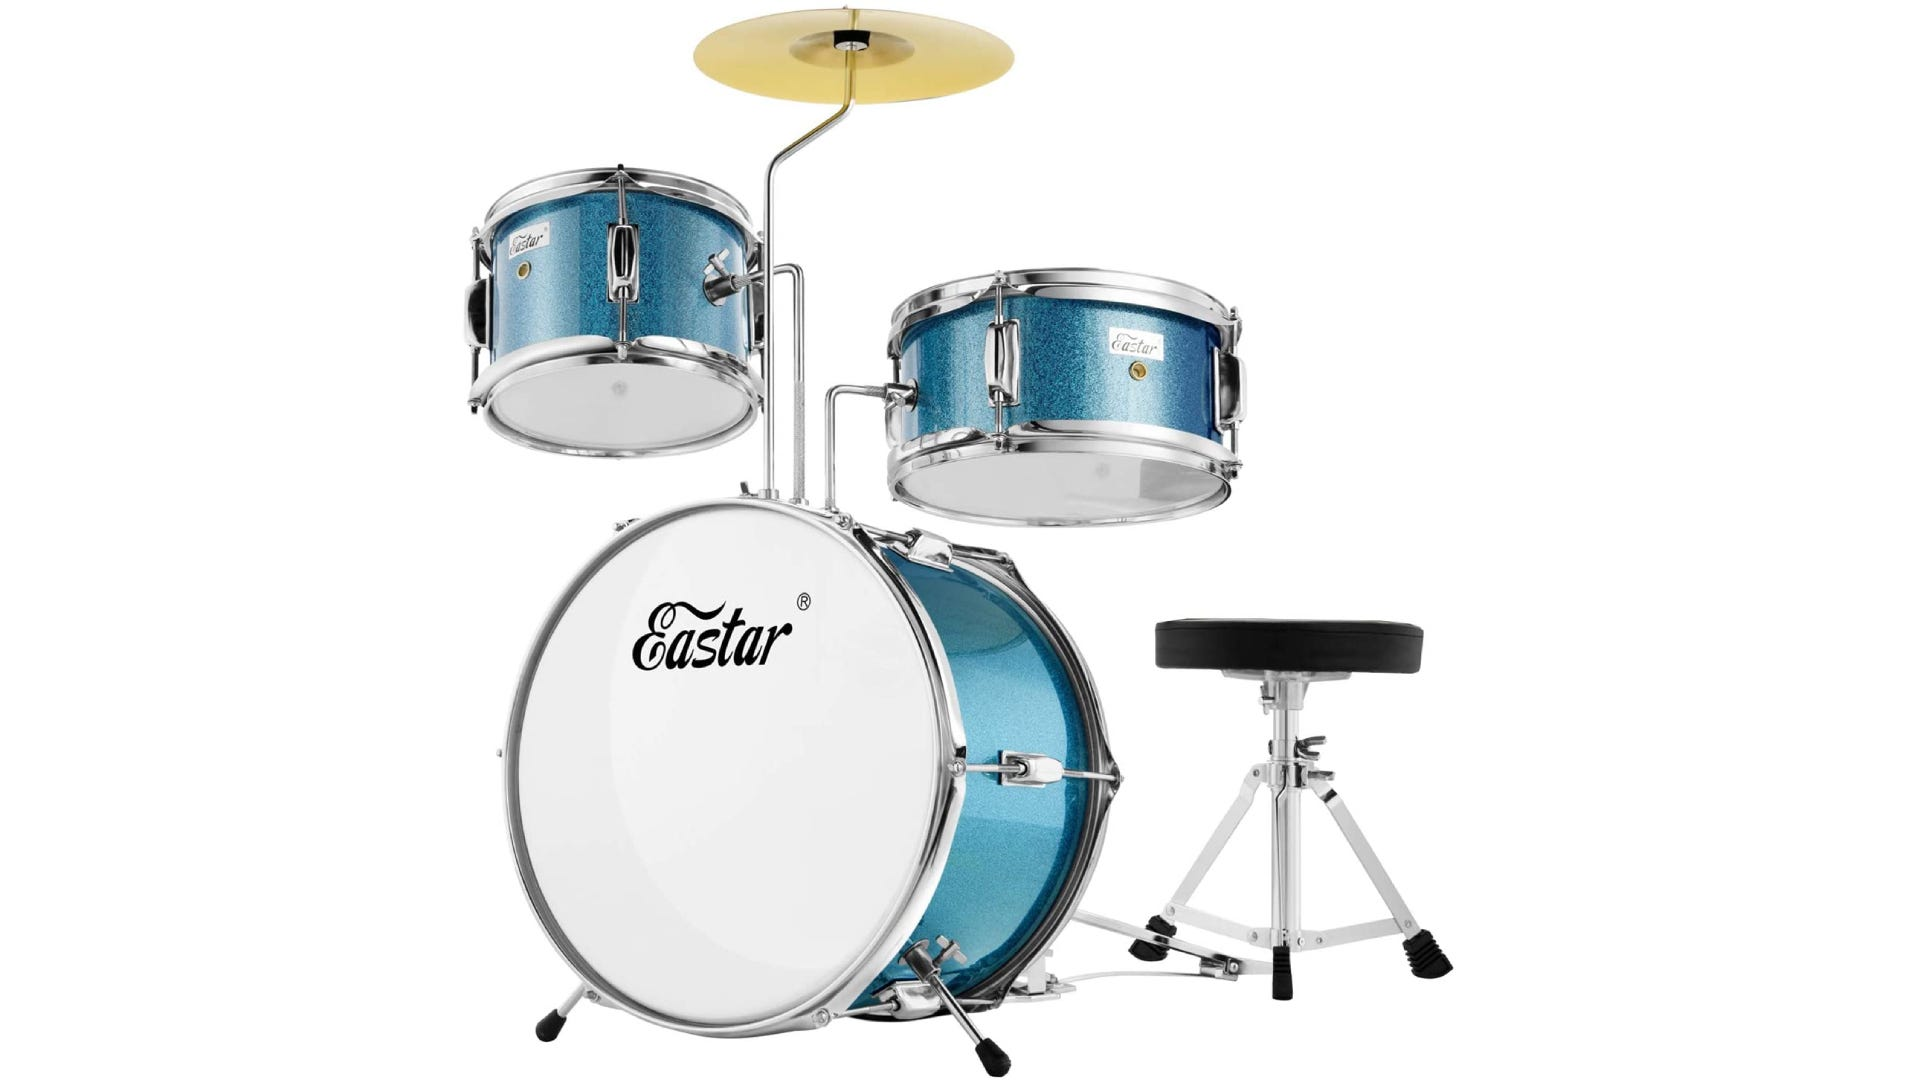 bright-colored drum set with bass drum, snare drum, tom, and cymbal.